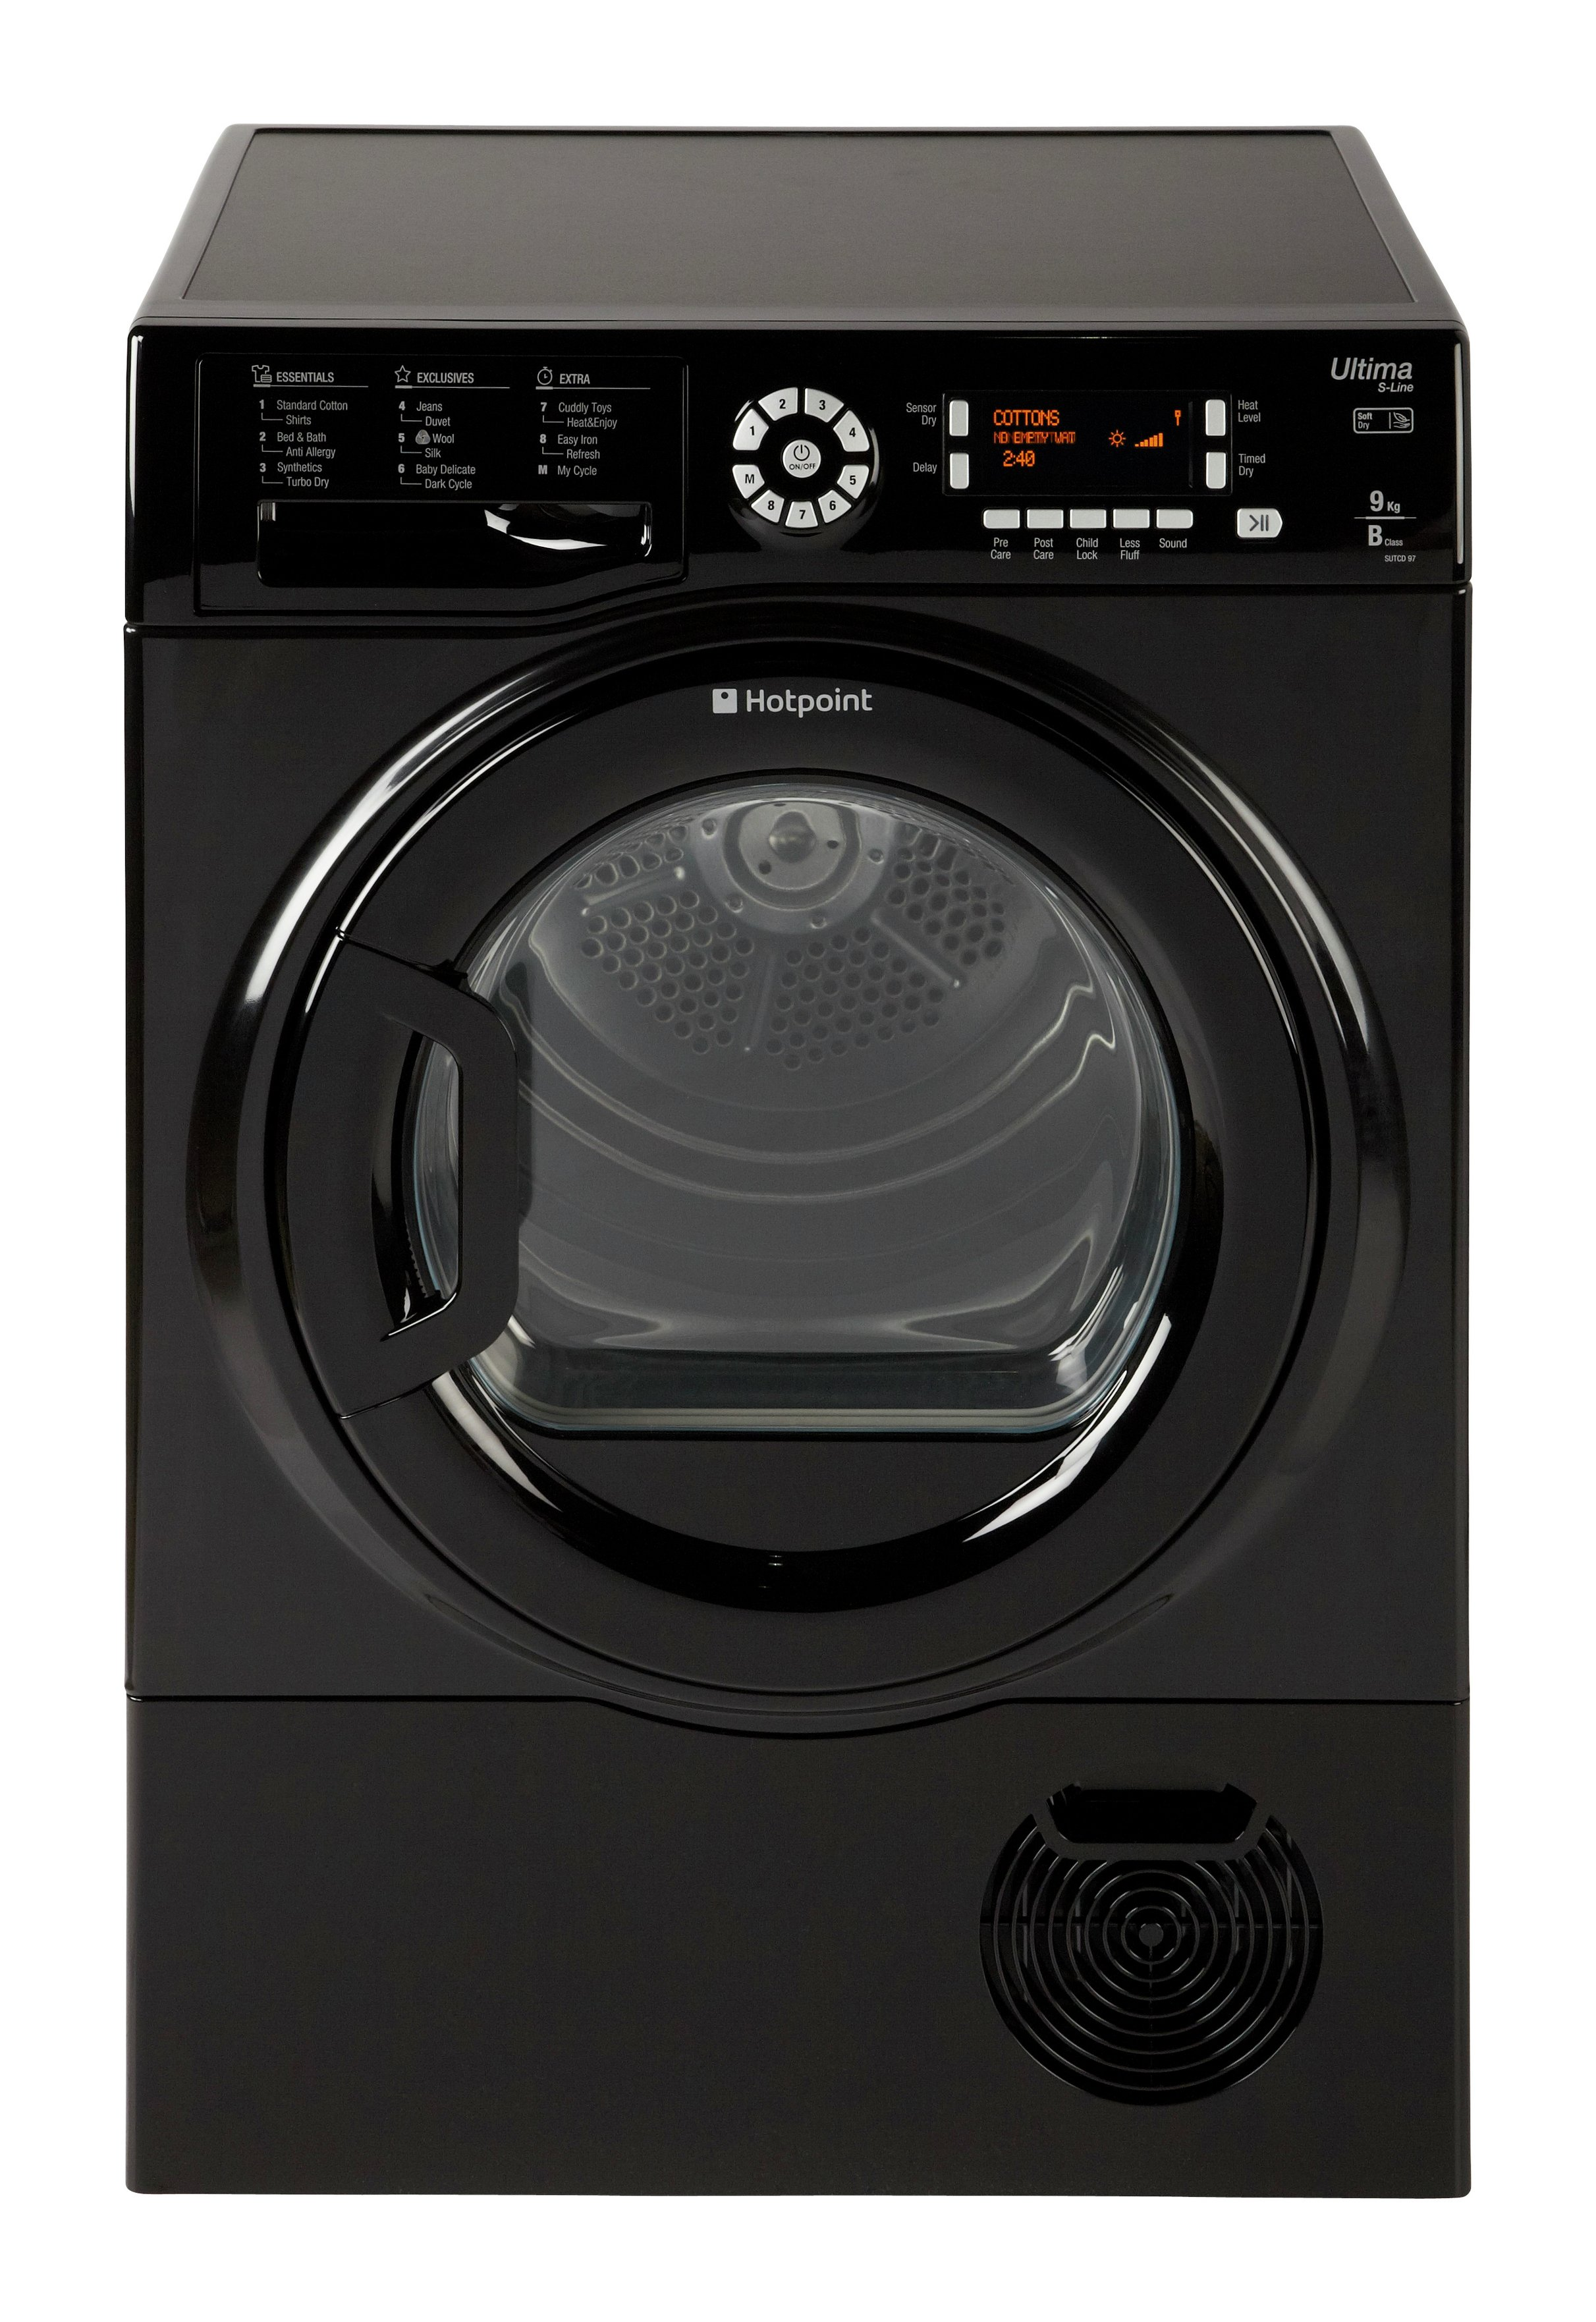 Hotpoint Ultima S-Line SUTCD 97B 6KM Tumble Dryer - Black